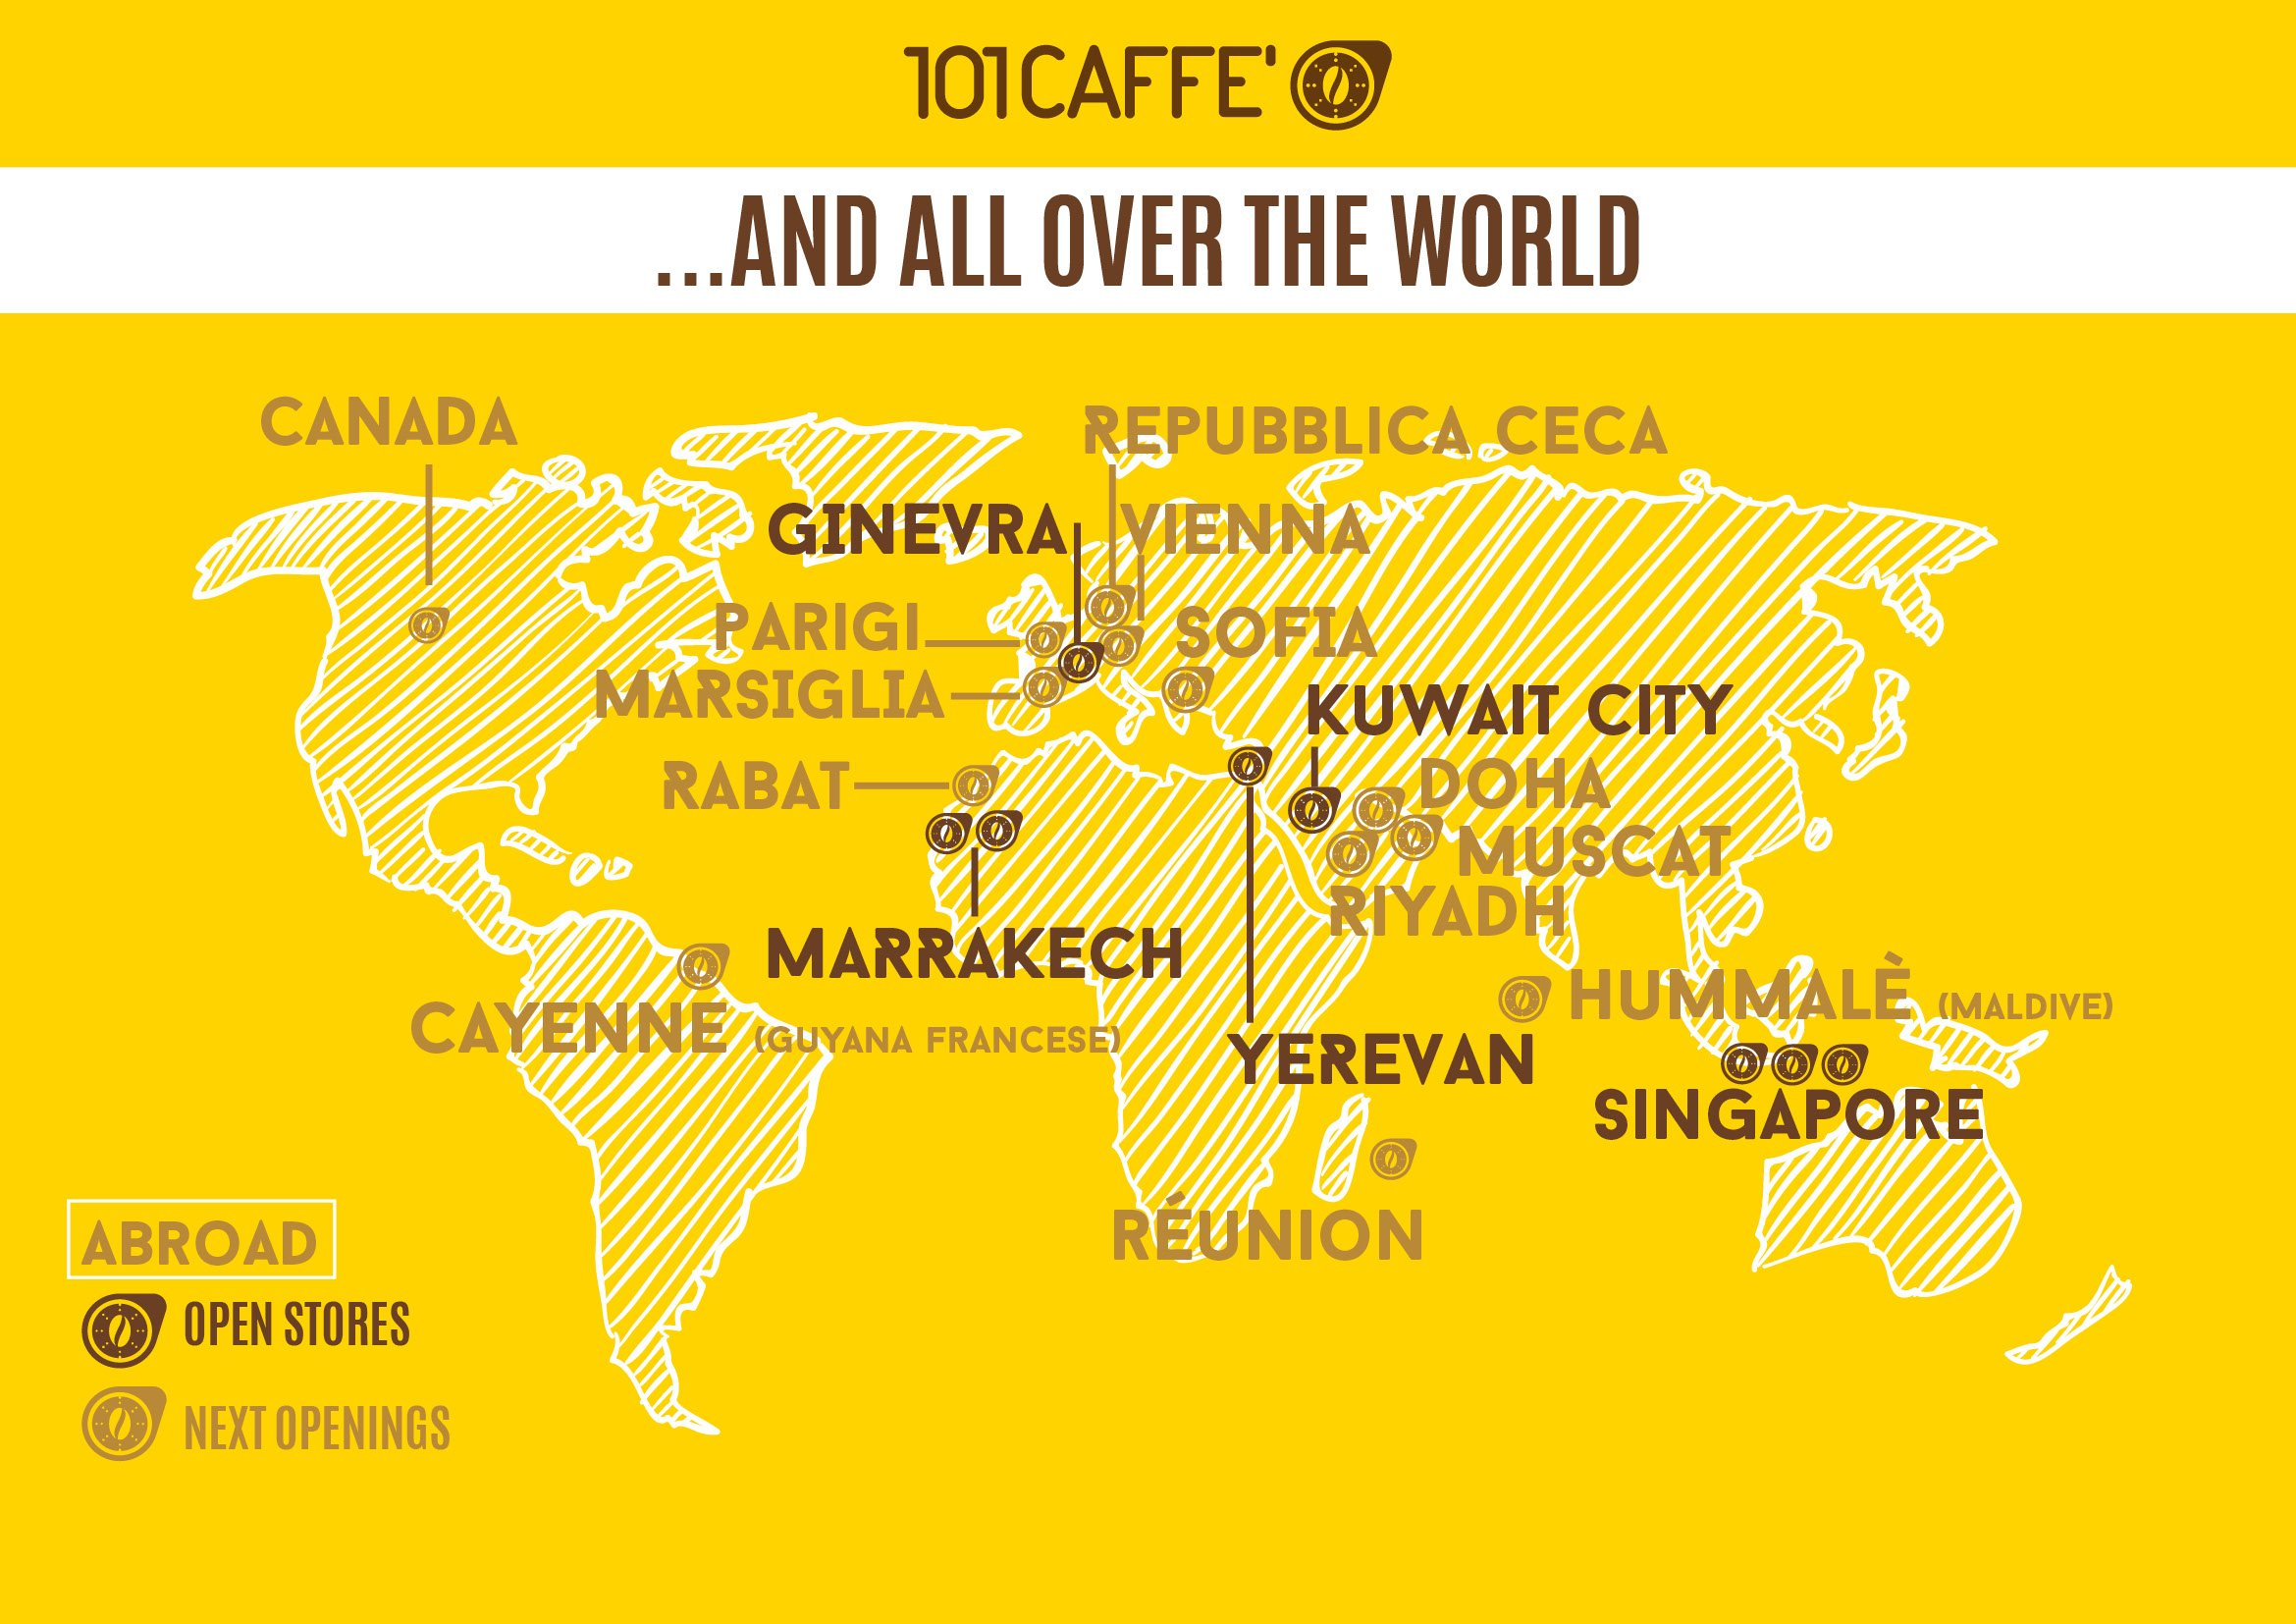 101CAFFE', the only one franchise on artisanal Italian coffee